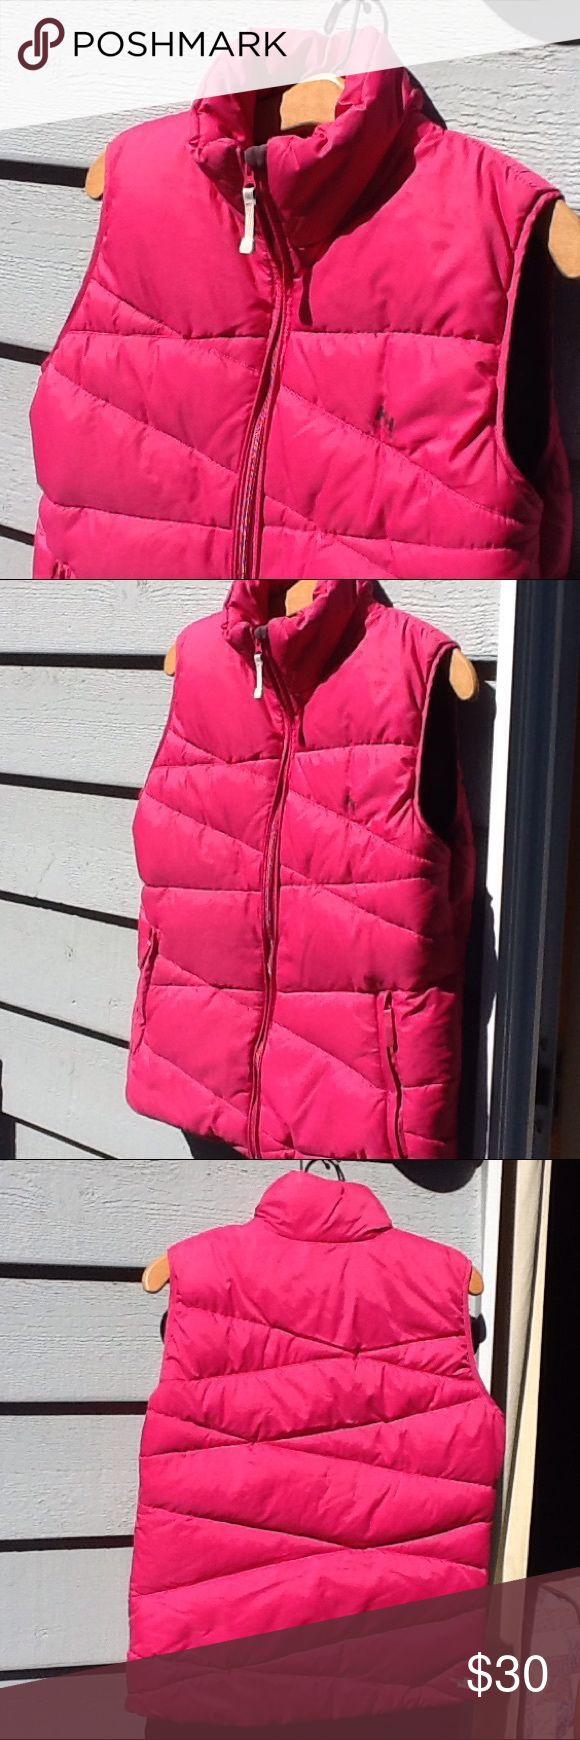 Helly Hansen puffer vest Gorgeous! The fabric content is missing, but it feels like down and feather interior. Used condition with normal wear. Helly Hansen Jackets & Coats Vests